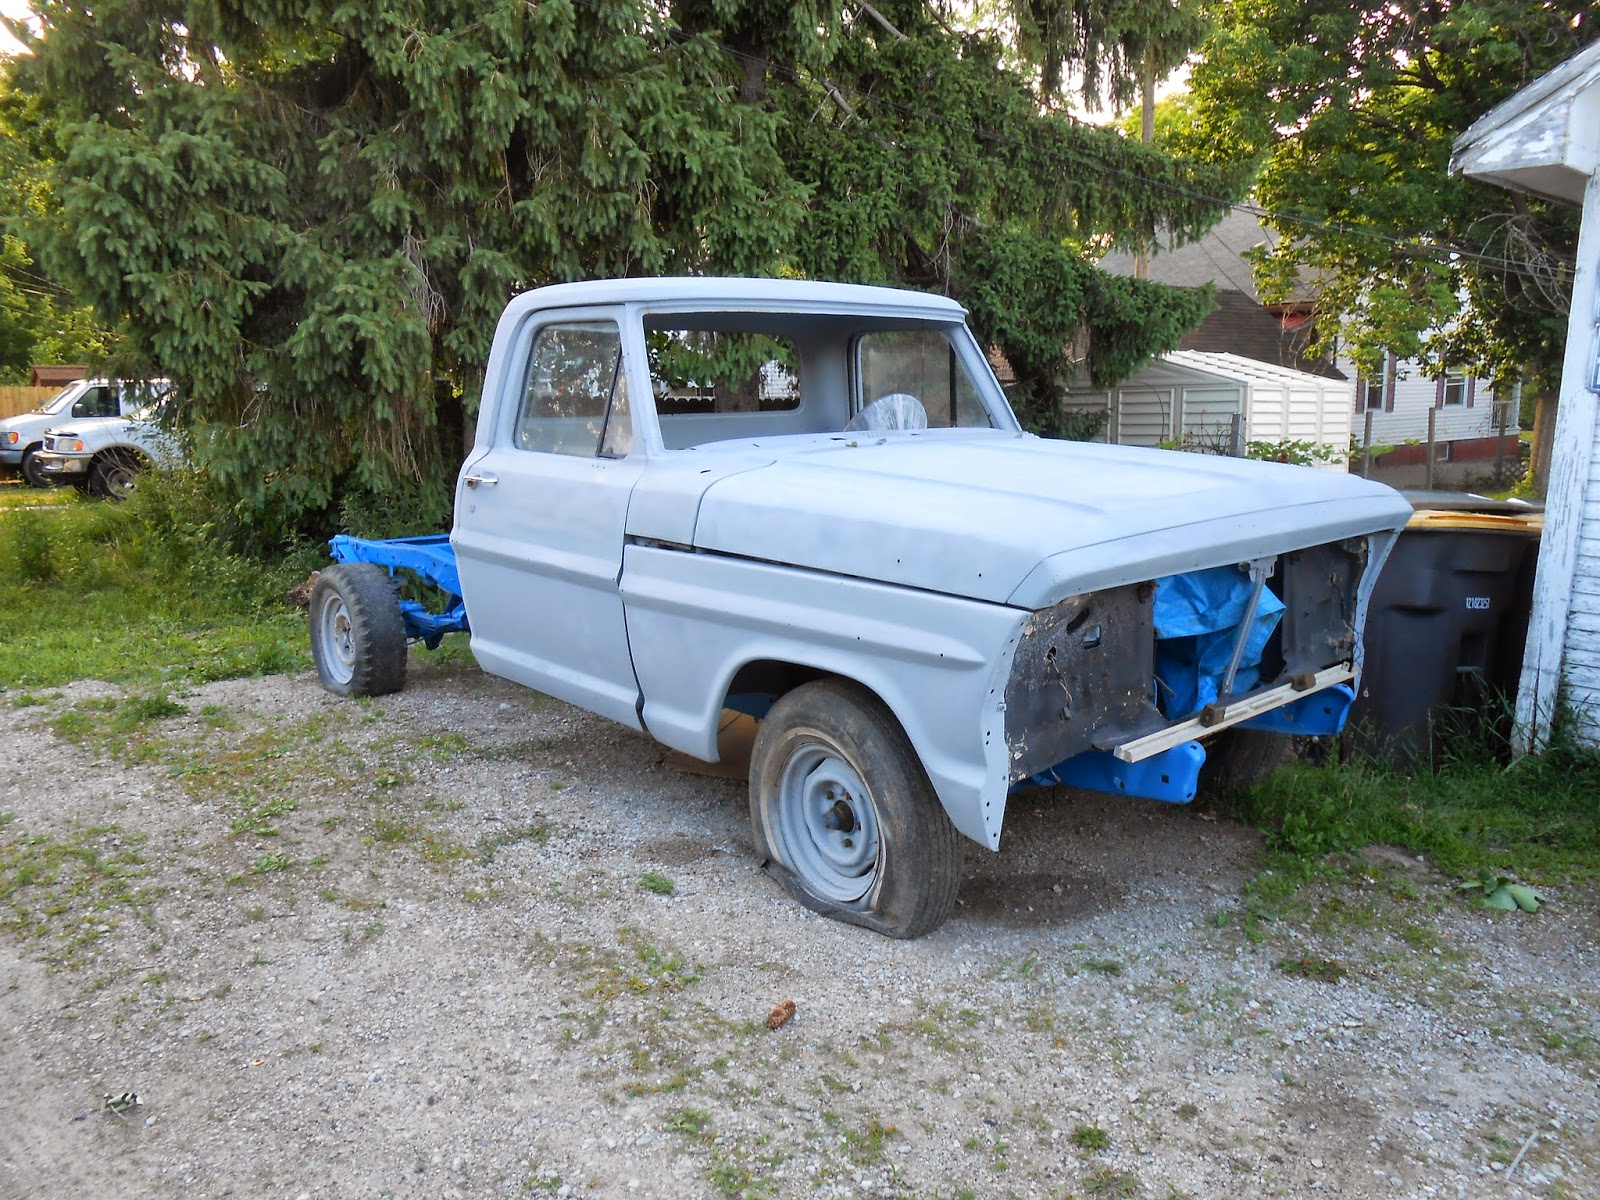 1970 Ford F100 primered from the Cab forward